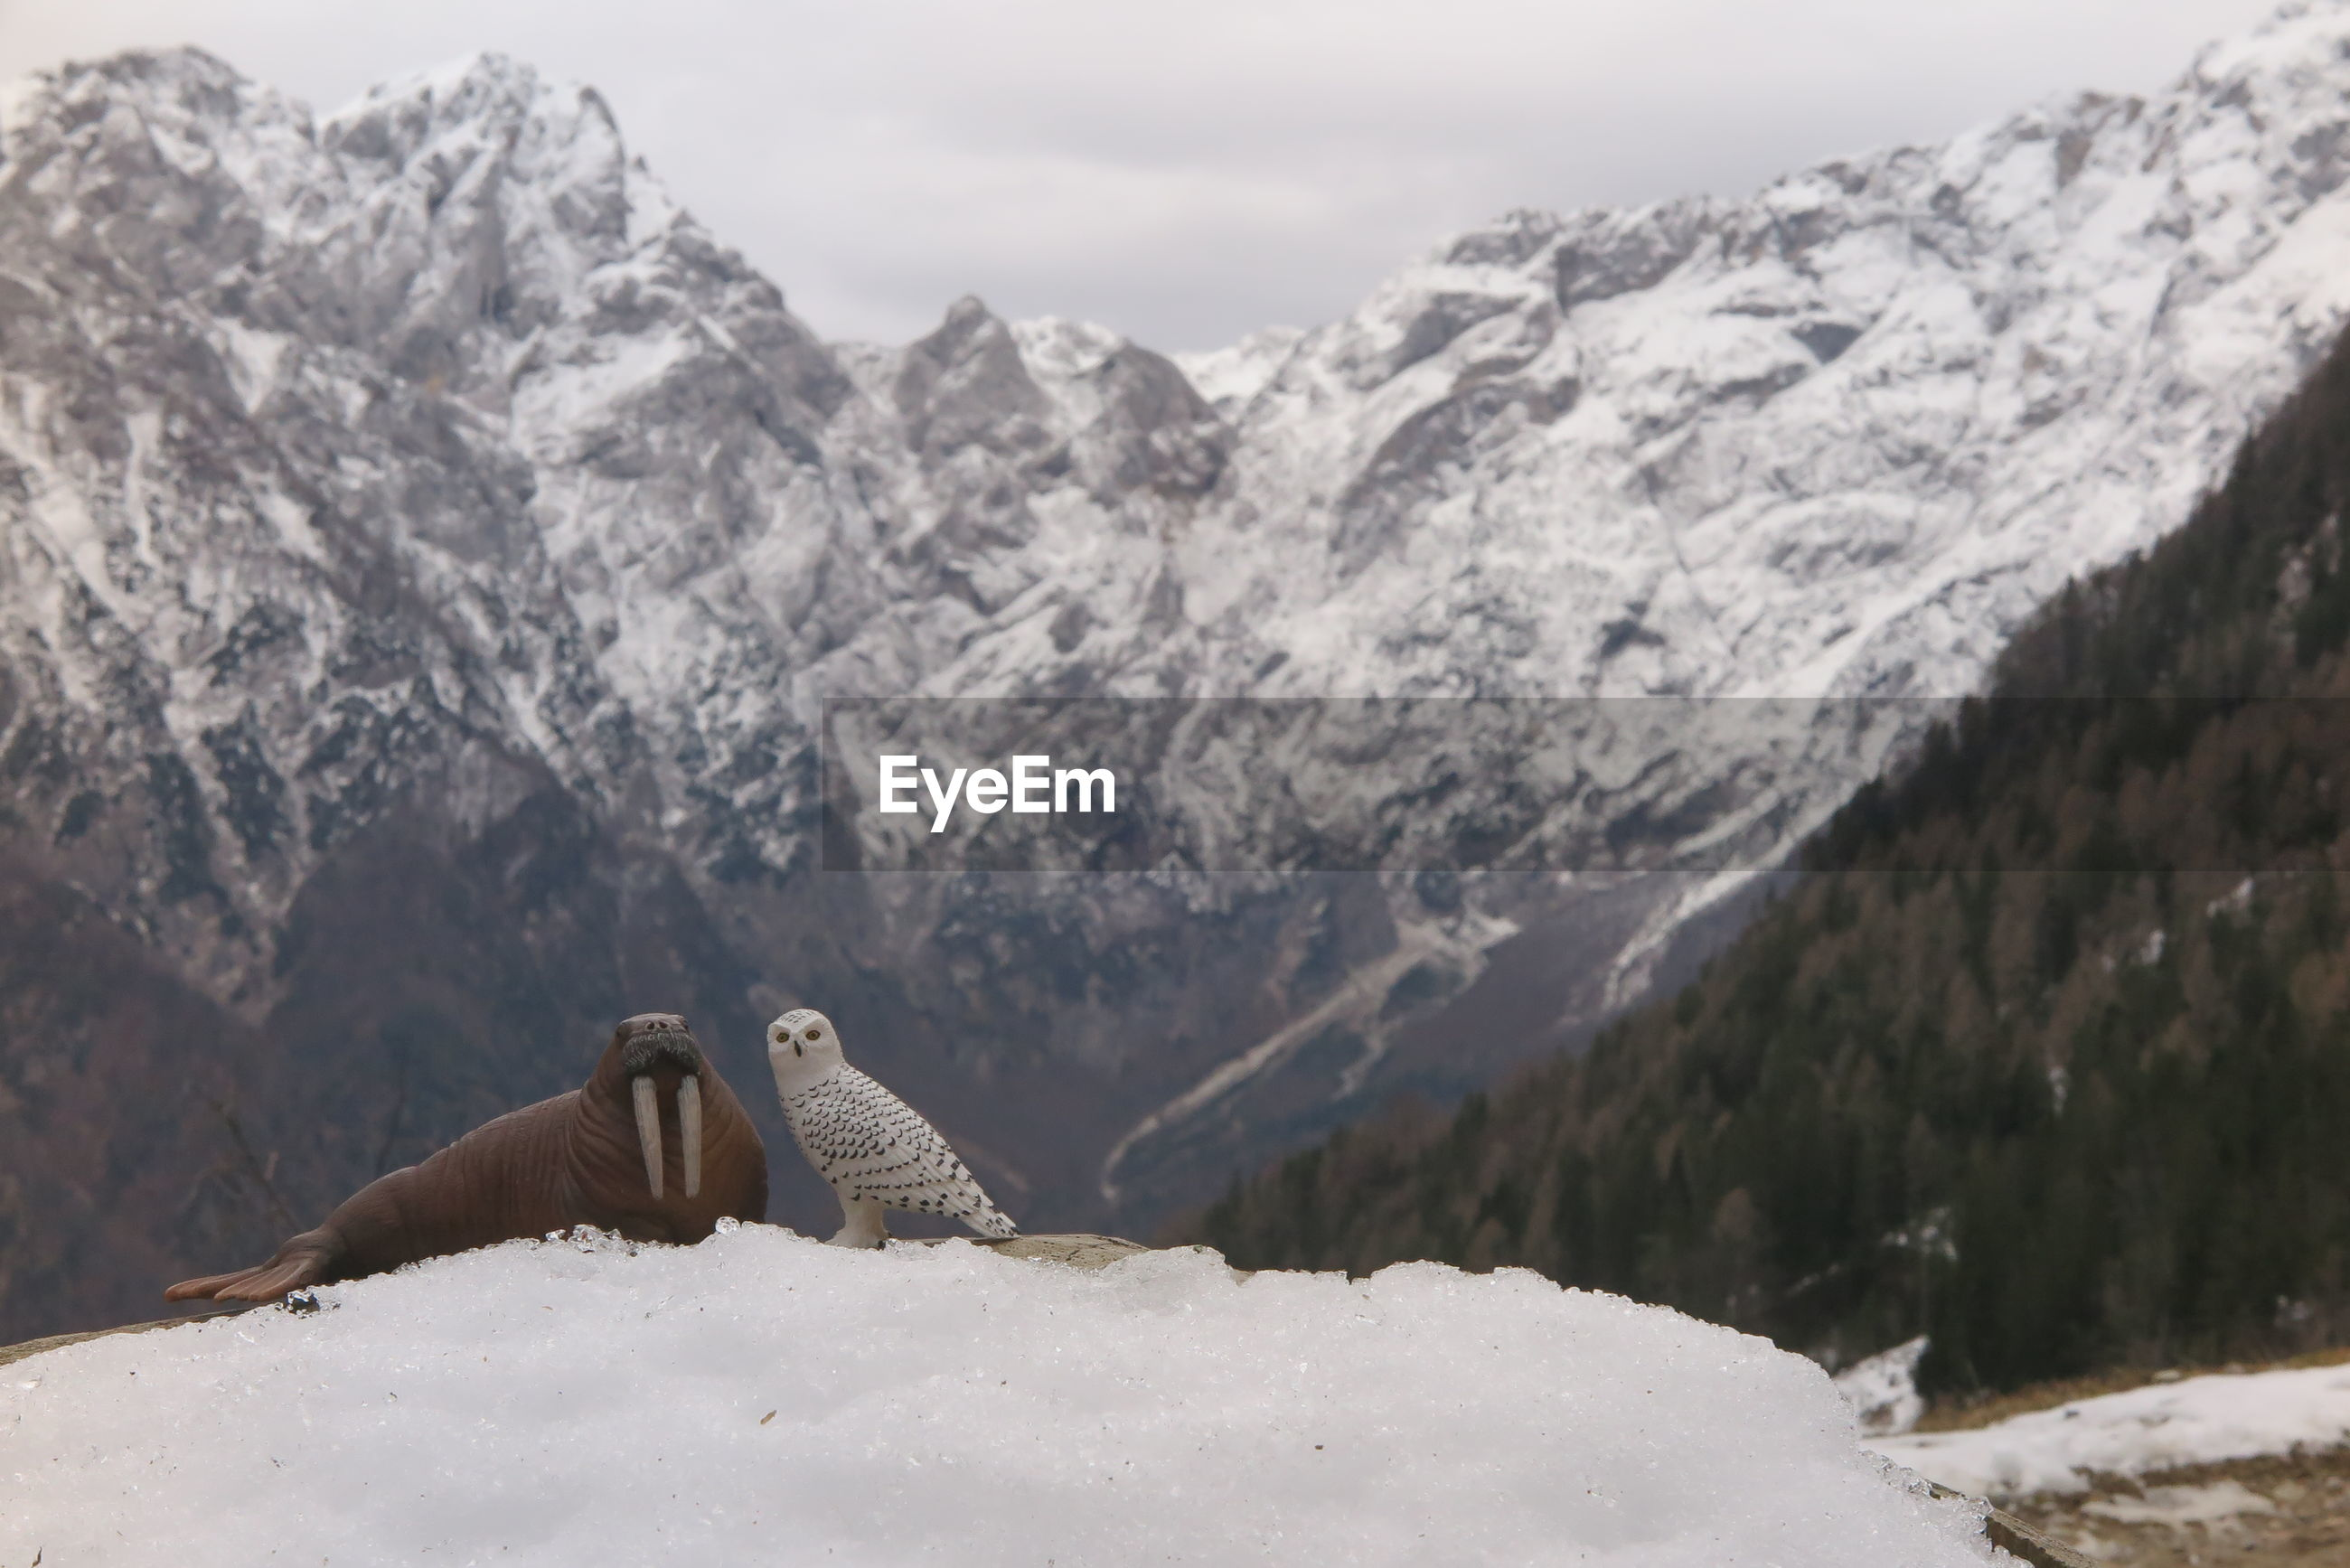 Scenic view of snowcapped mountains with toy walrus and owl in the foreground